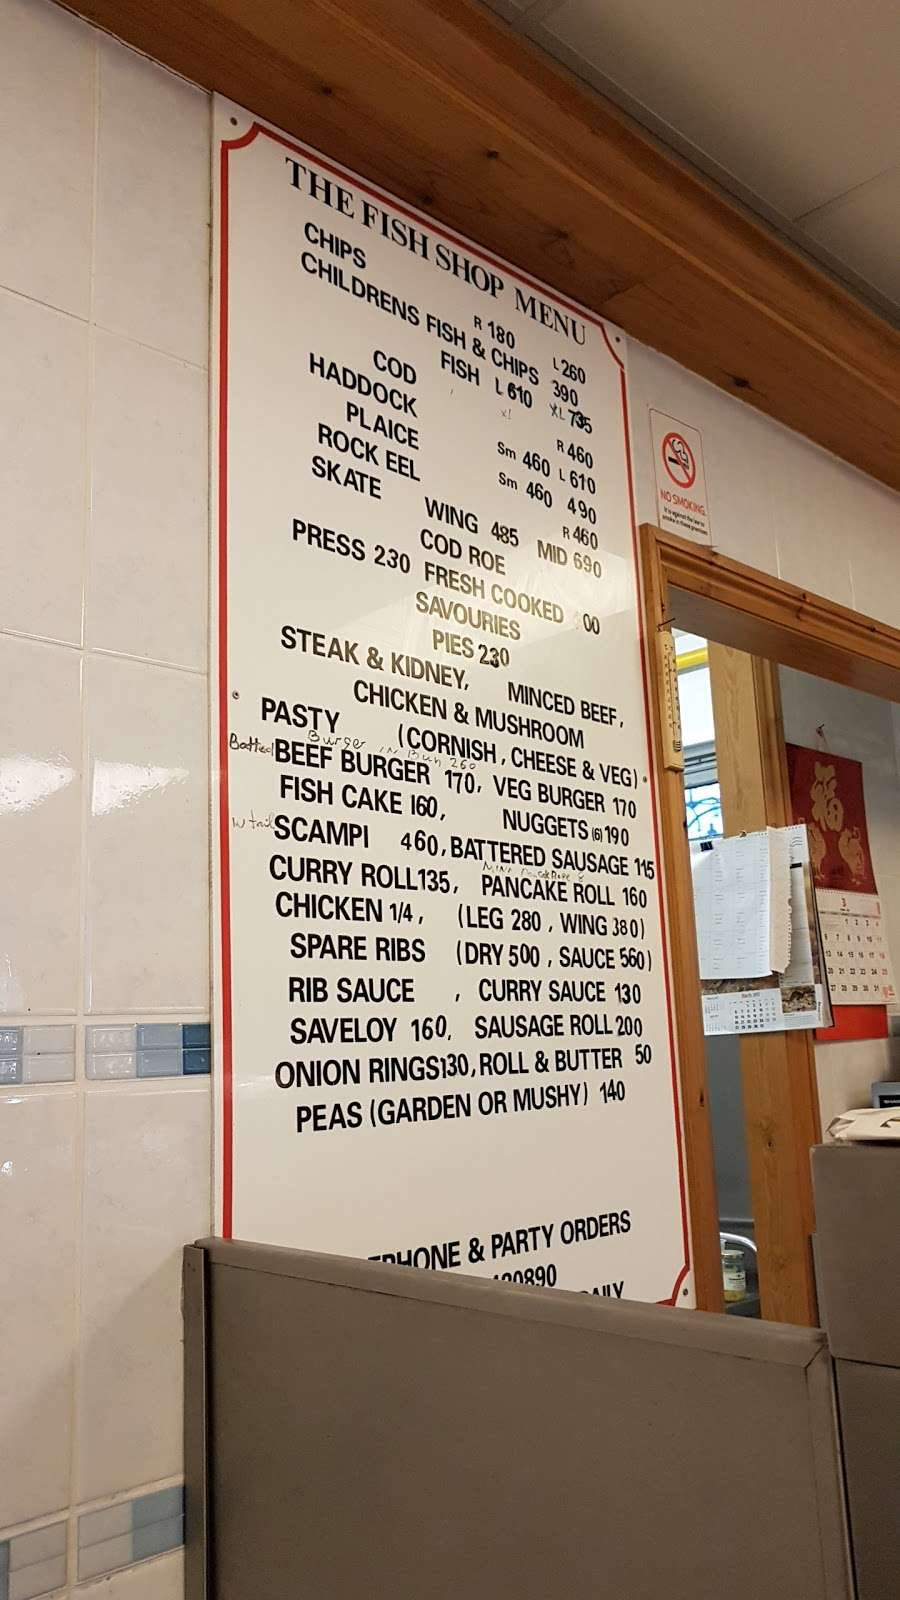 The Fish Shop - meal takeaway  | Photo 5 of 7 | Address: 7B Bridge St, Writtle, Chelmsford CM1 3EY, UK | Phone: 01245 420890